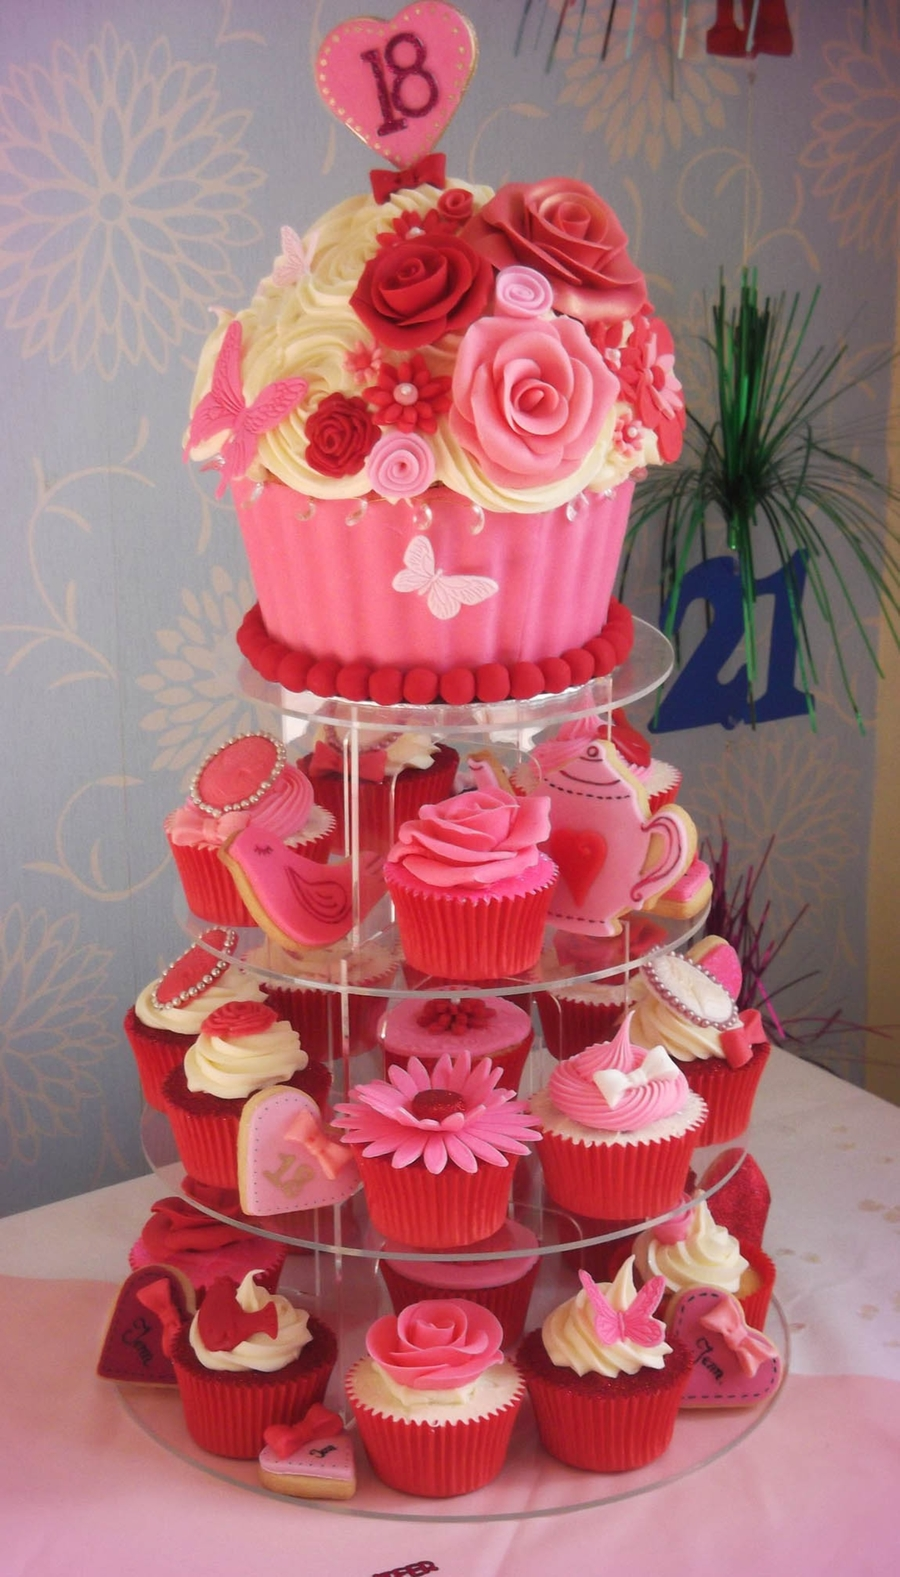 Giant Cupcake Tower on Cake Central